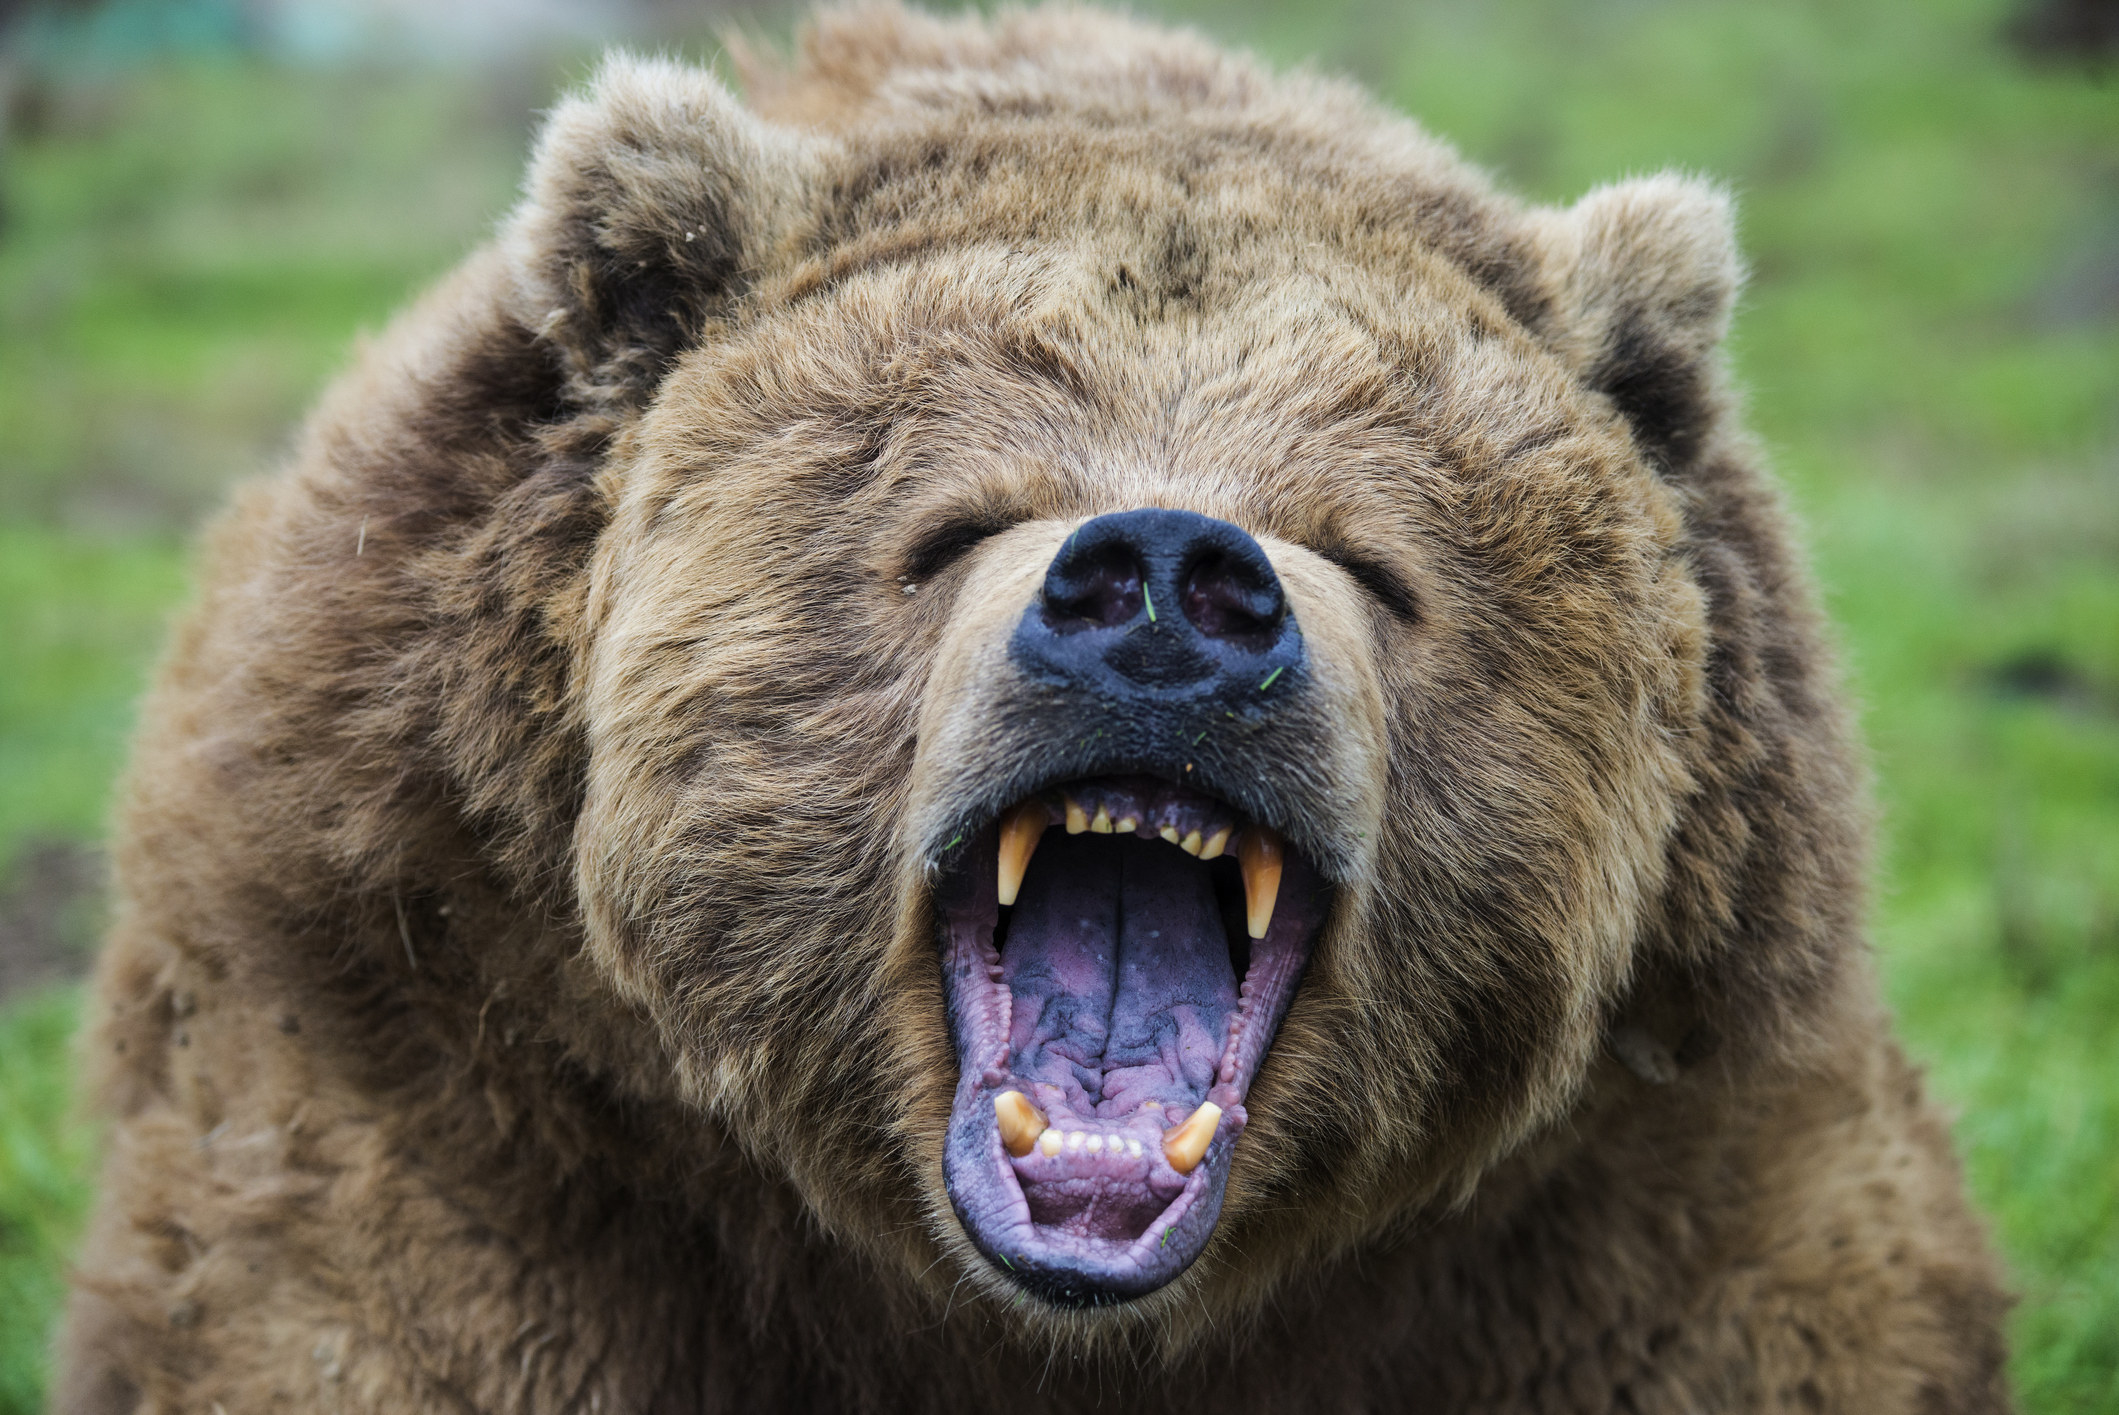 A closeup of a grizzly bear snarling